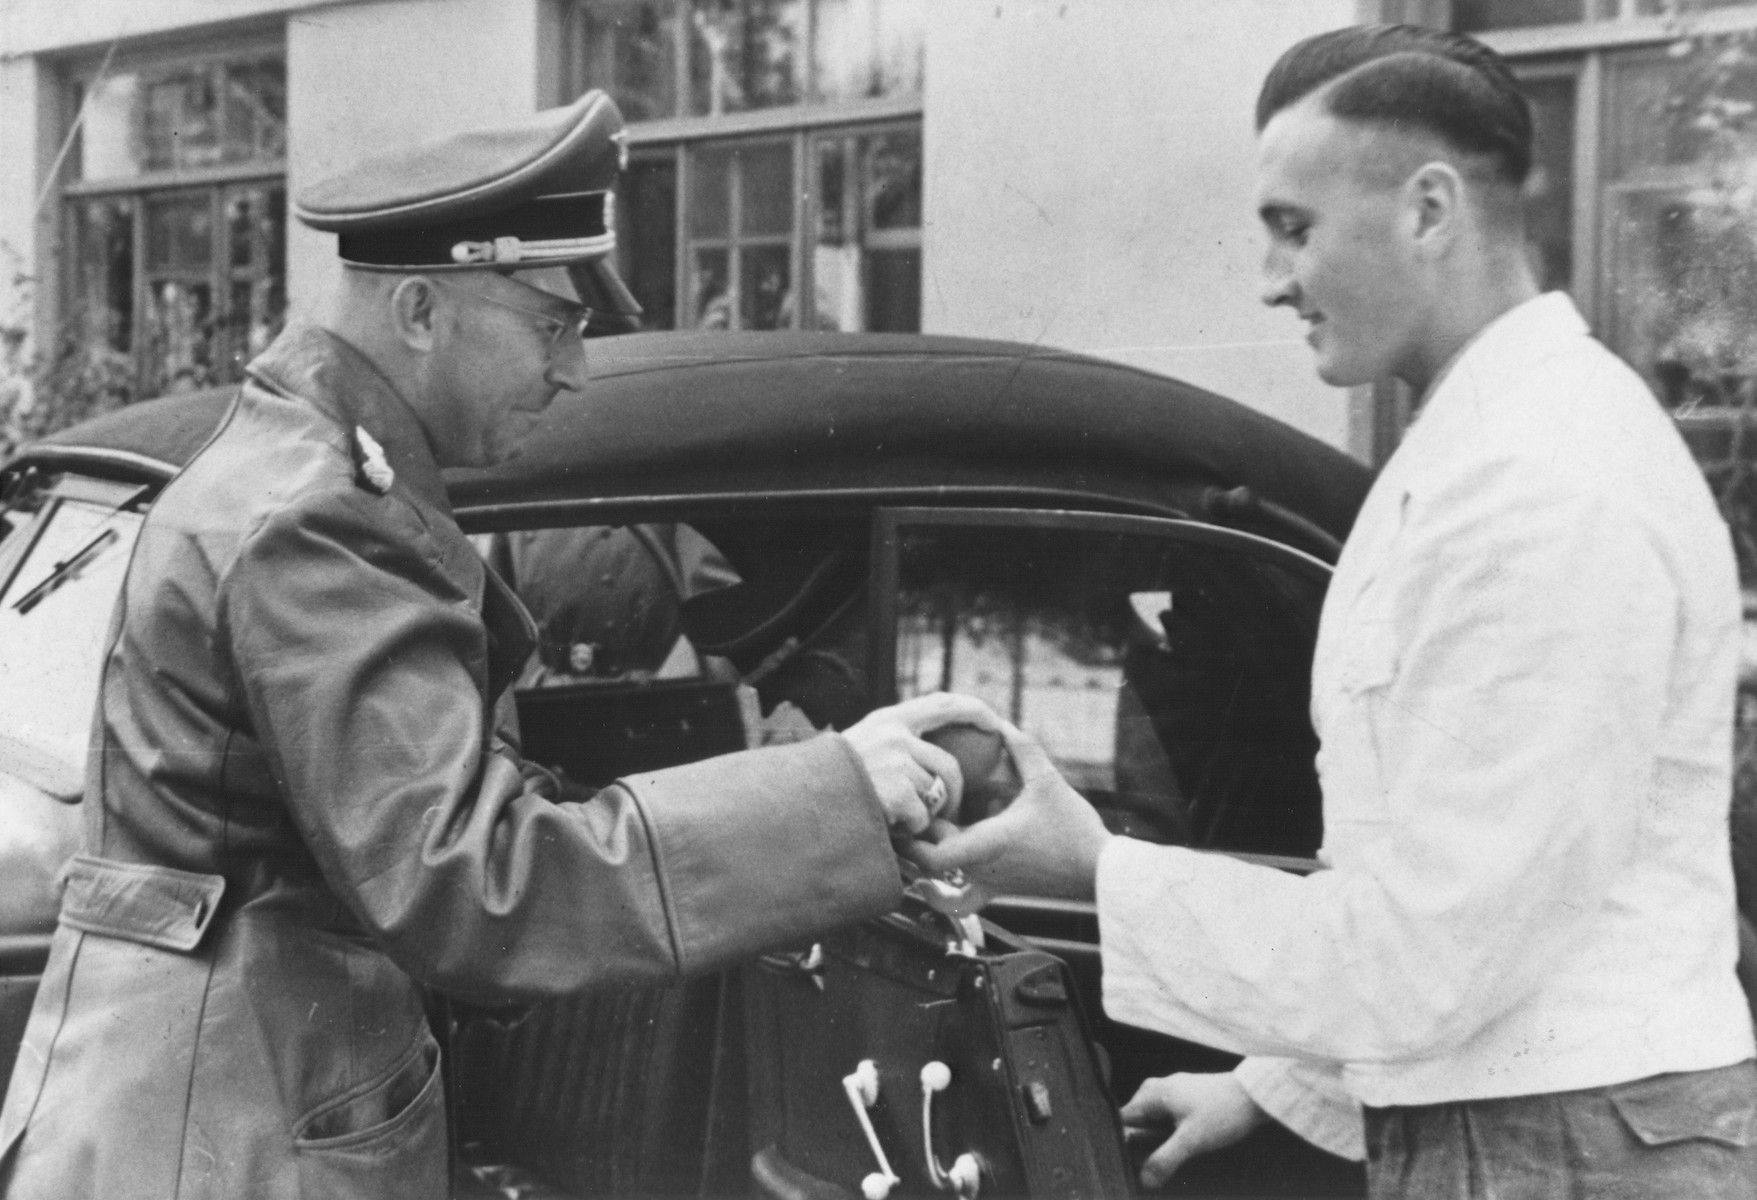 Reichsfuehrer-SS Heinrich Himmler accepts a birthday gift from a server at Hochwald before getting into an automobile.